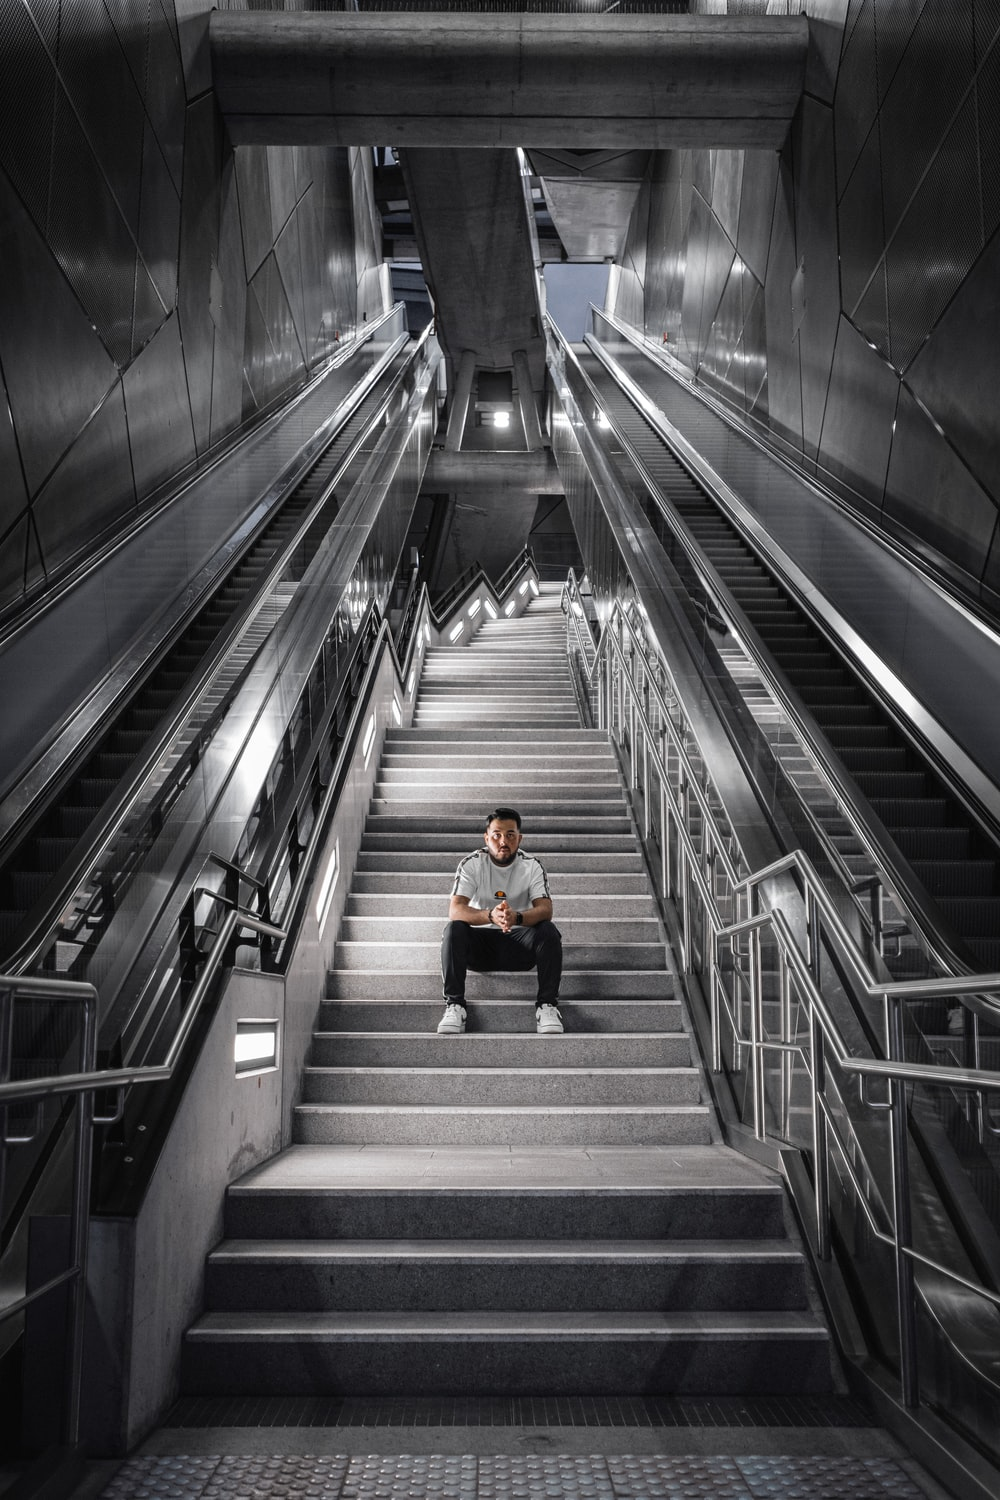 man sitting alone on stairs inside building